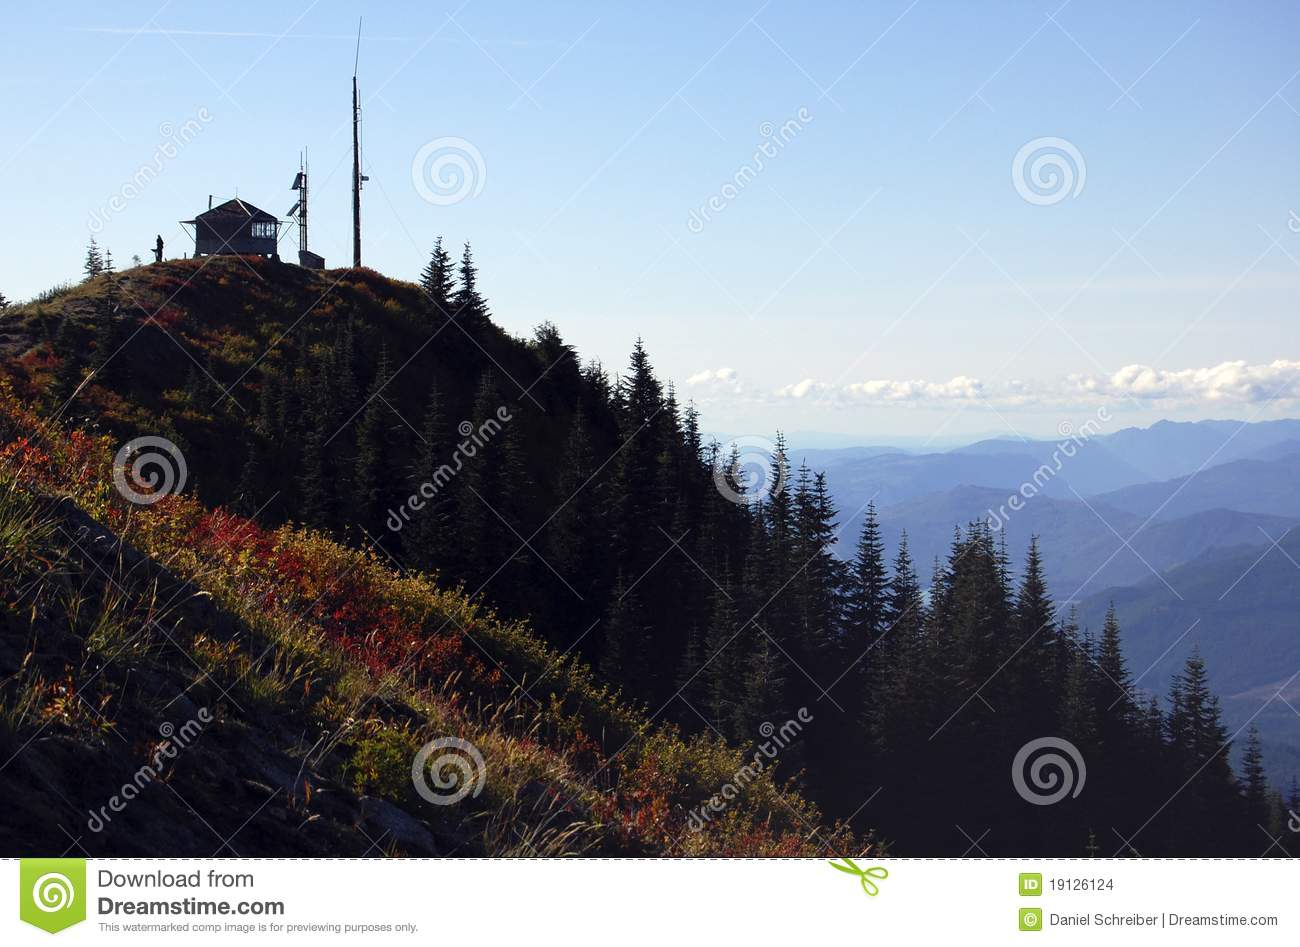 Burley (ID) United States  City new picture : Burley Mountain Fire Lookout, Washington state, Gifford Pinchot ...